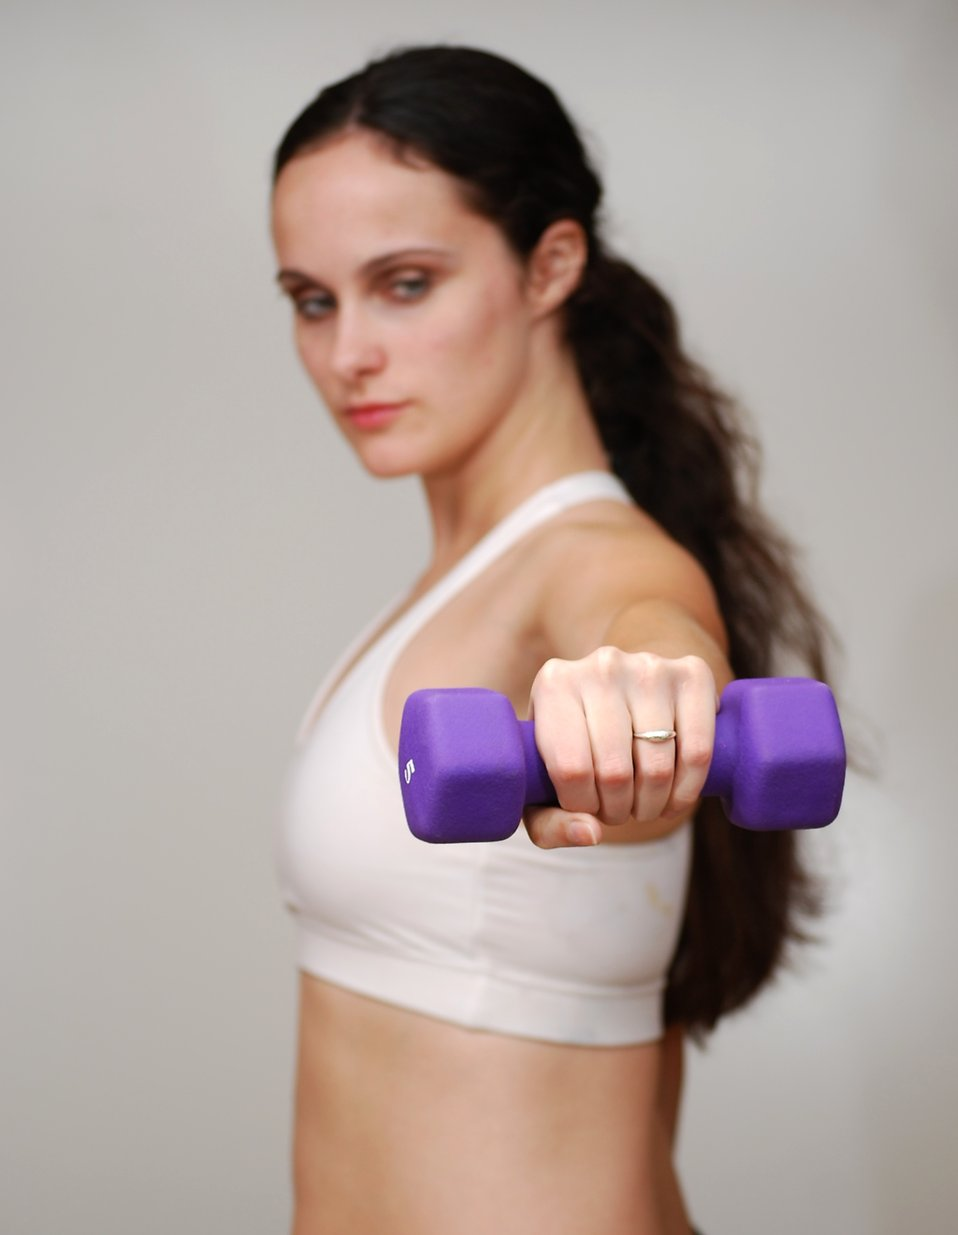 A beautiful young woman exercising with weights : Free Stock Photo